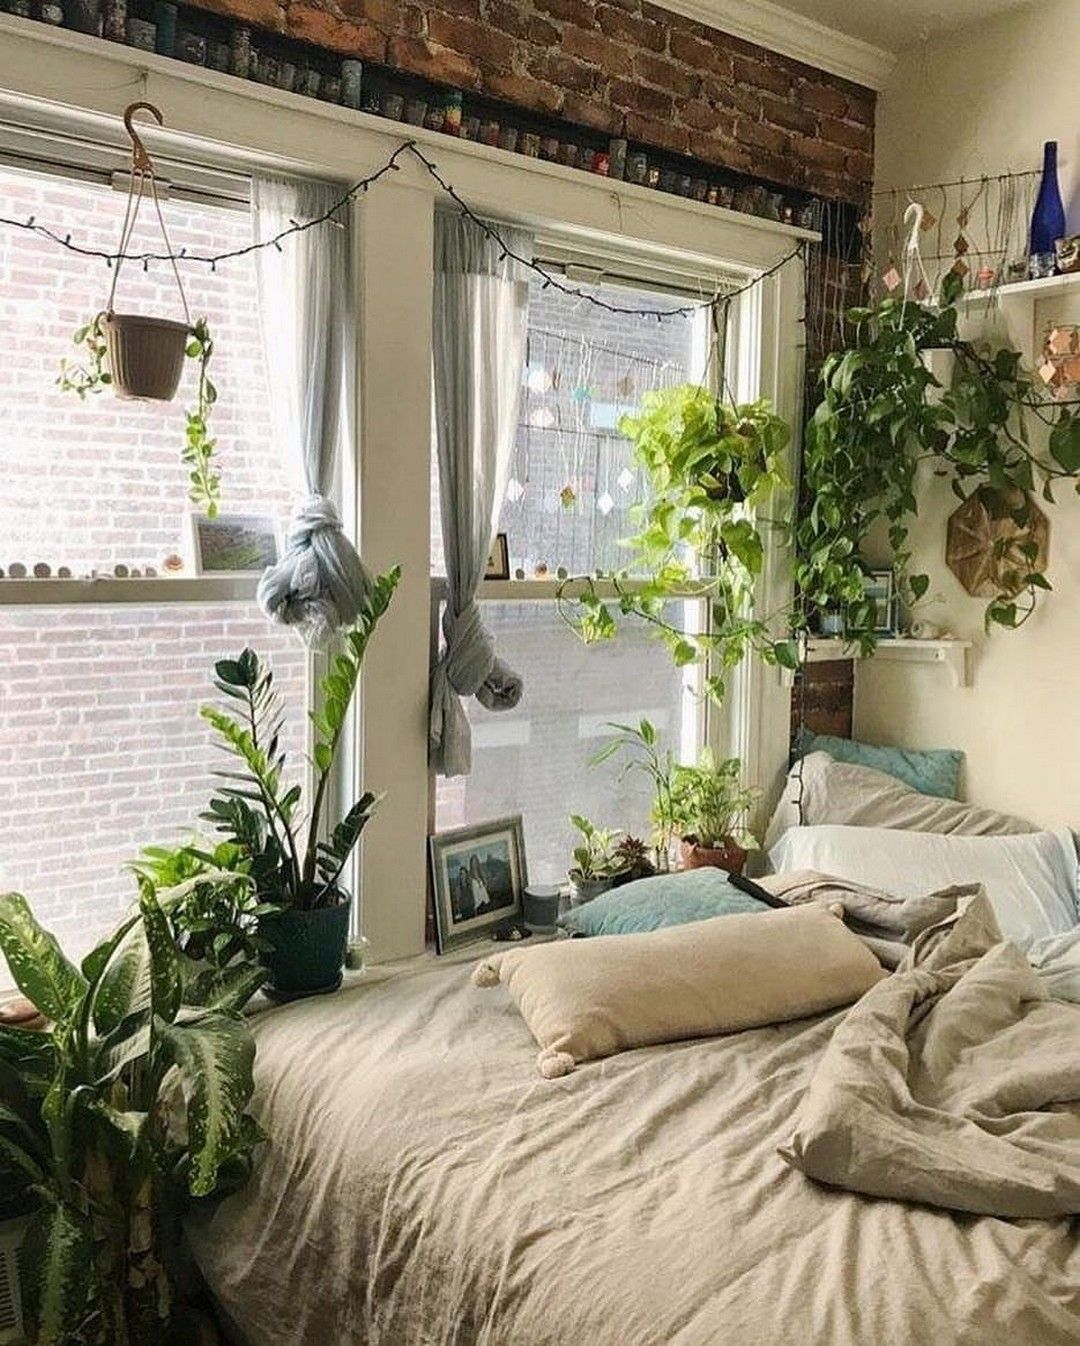 creative and genius small apartment decorating on  budget https also amazing indoor garden decorations tips ideas home decor rh pinterest